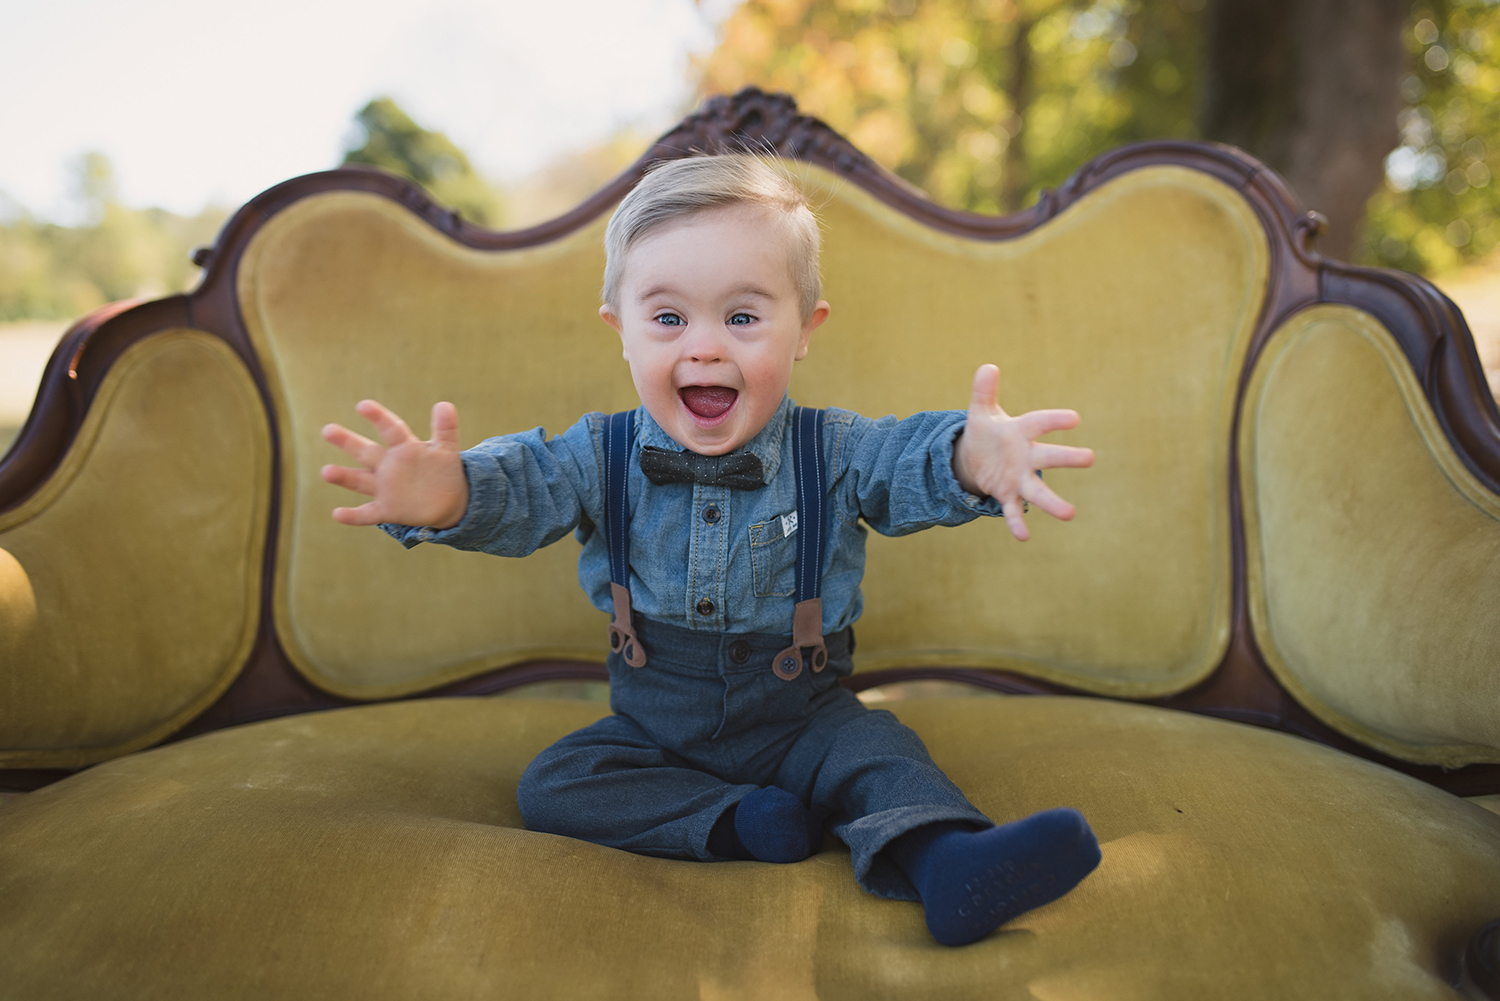 Baby Turned Down for Ad by Agency Because of Down Syndrome